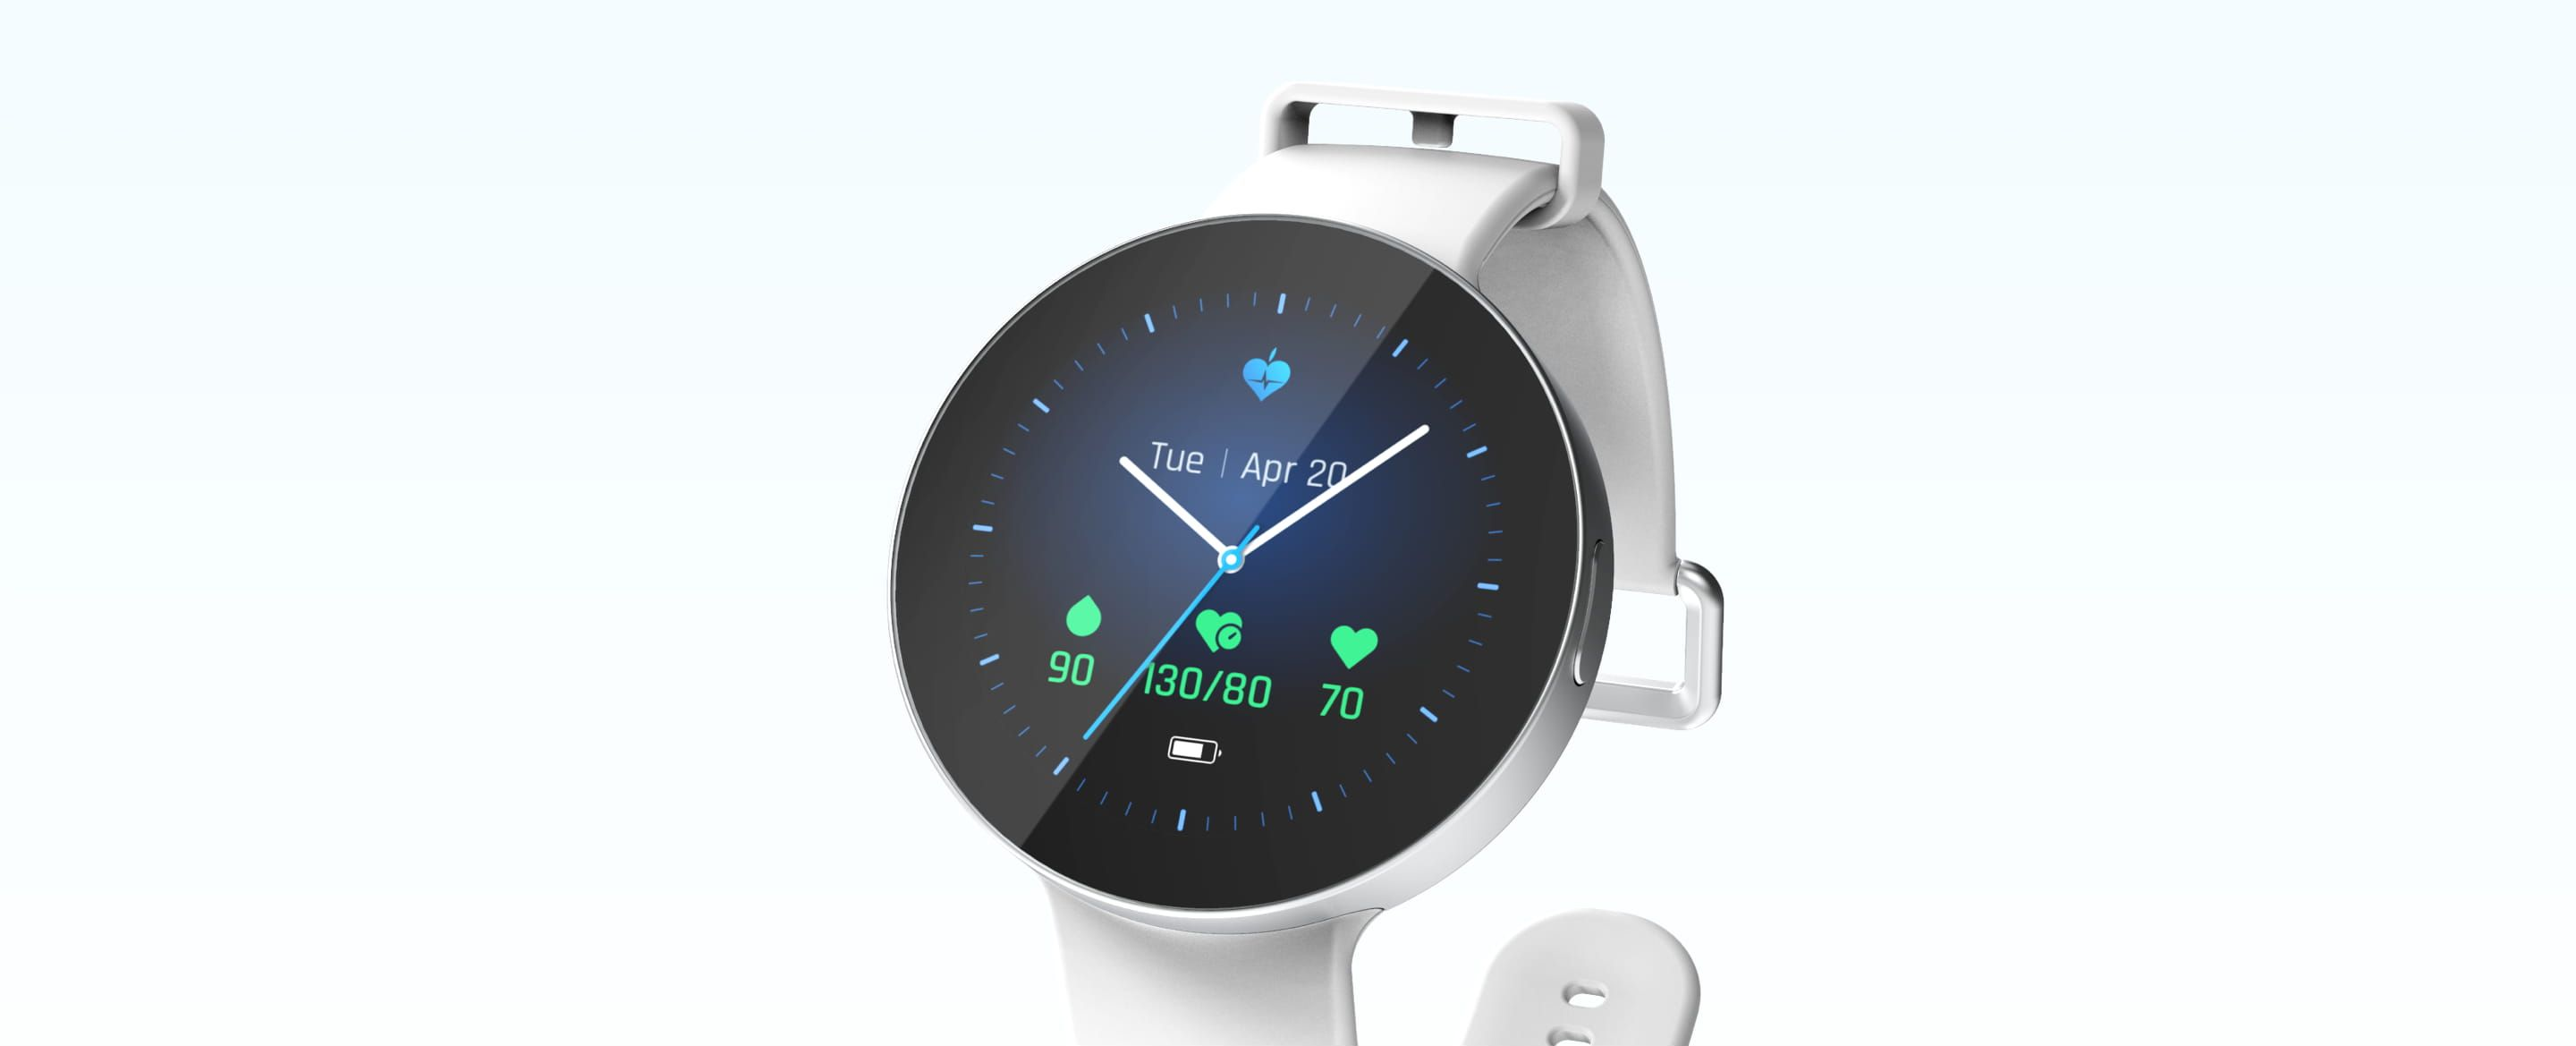 Rendering of LifePlus glucose-monitoring smart-watch, showing watch face